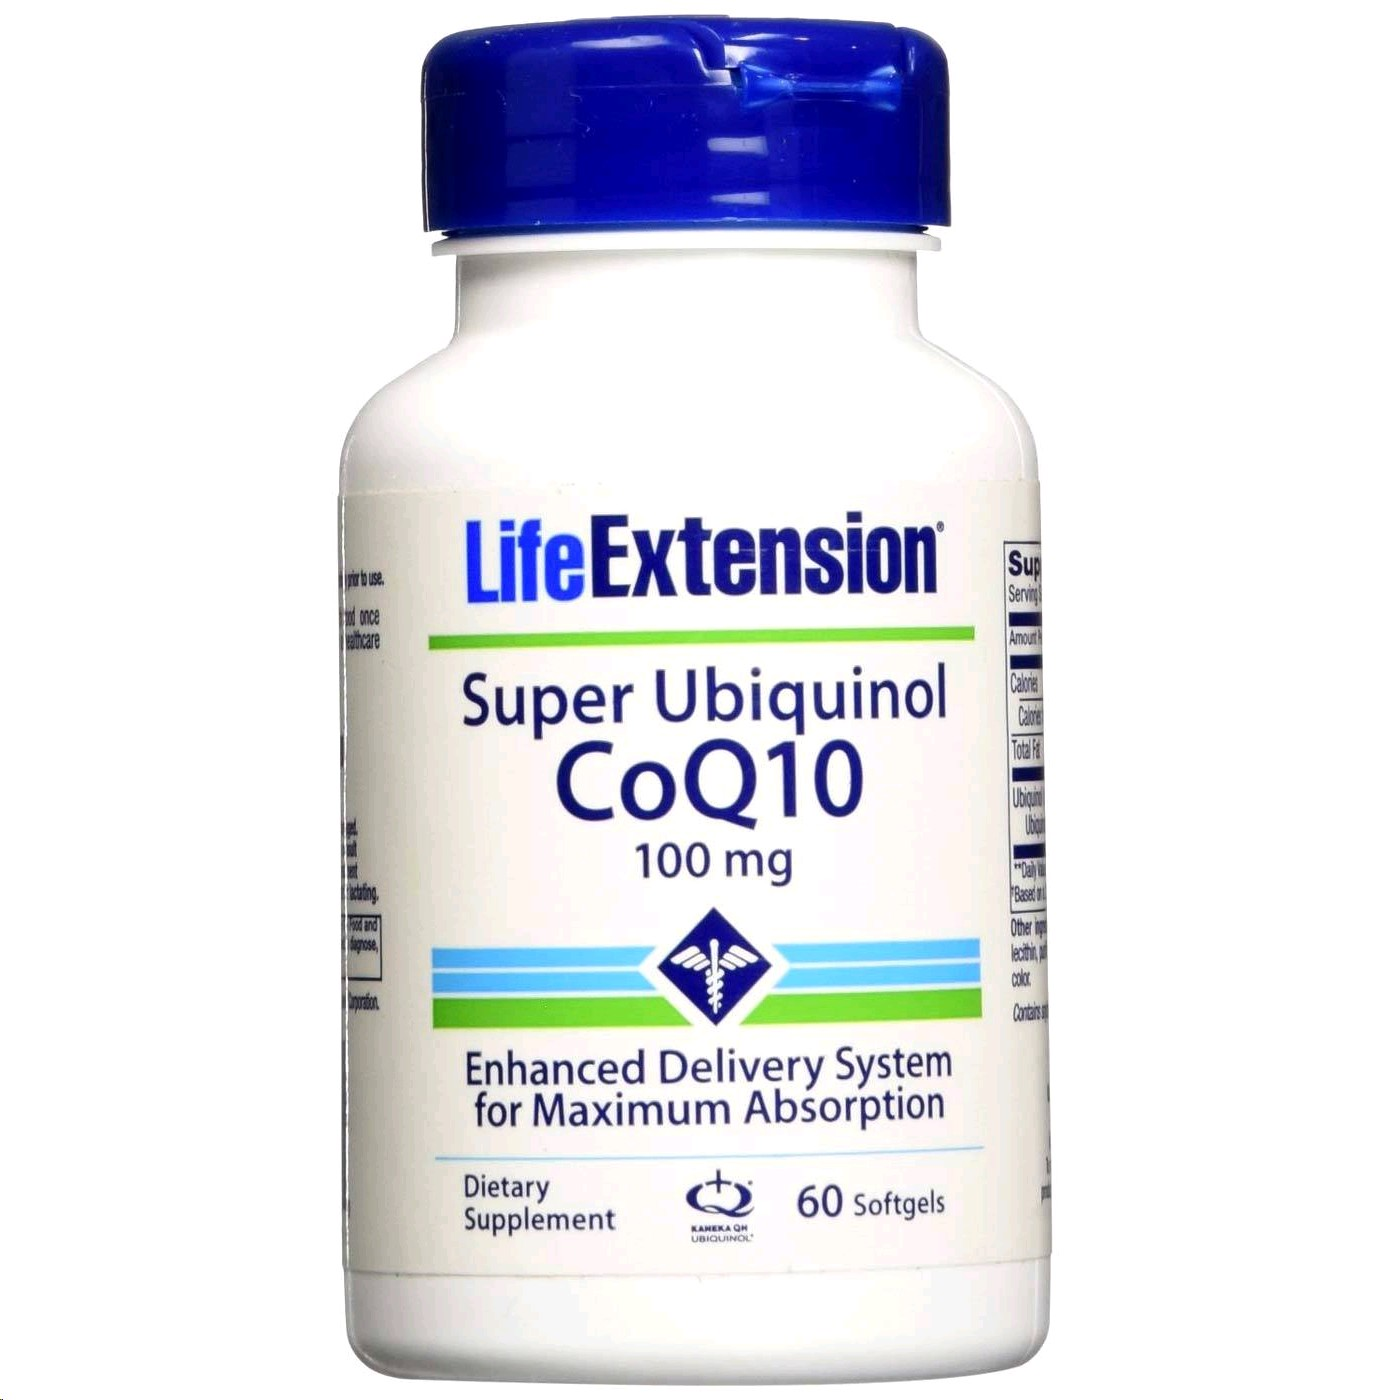 LIFE EXTENSION SUPER UBIQUINOL CoQ10 100MG  60 PERLES